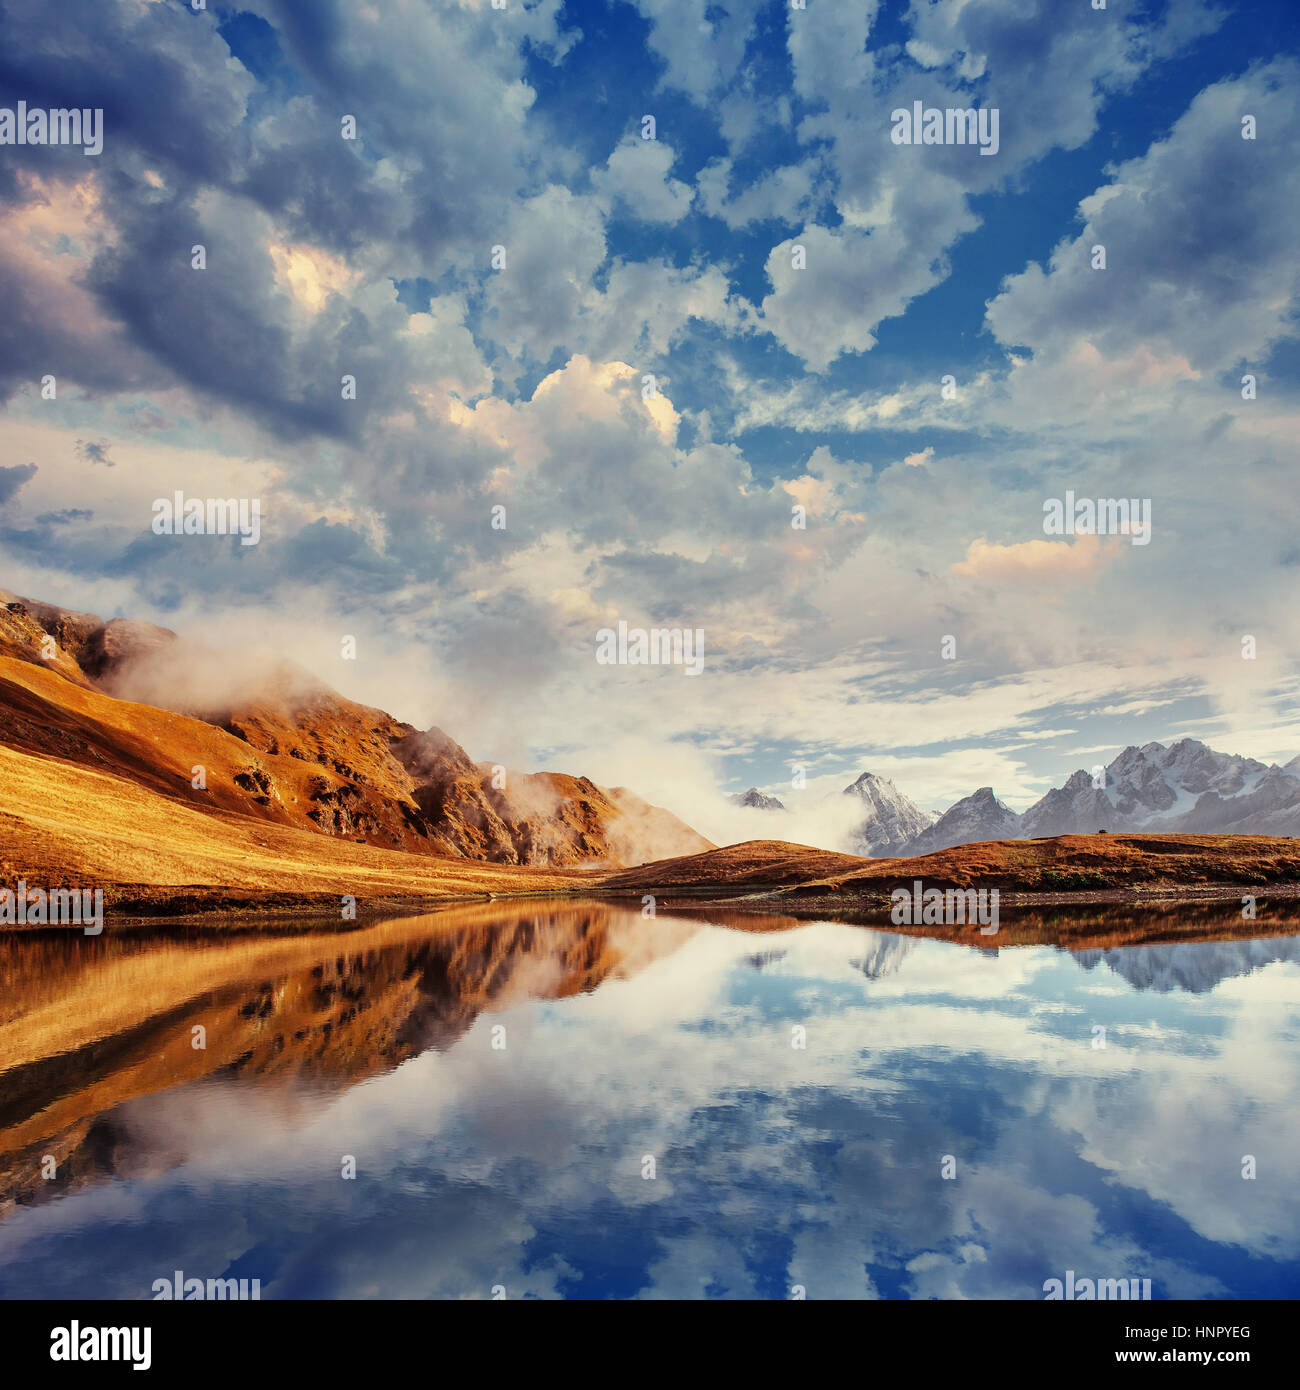 The picturesque landscape in the mountains. Upper Svaneti, Georg - Stock Image